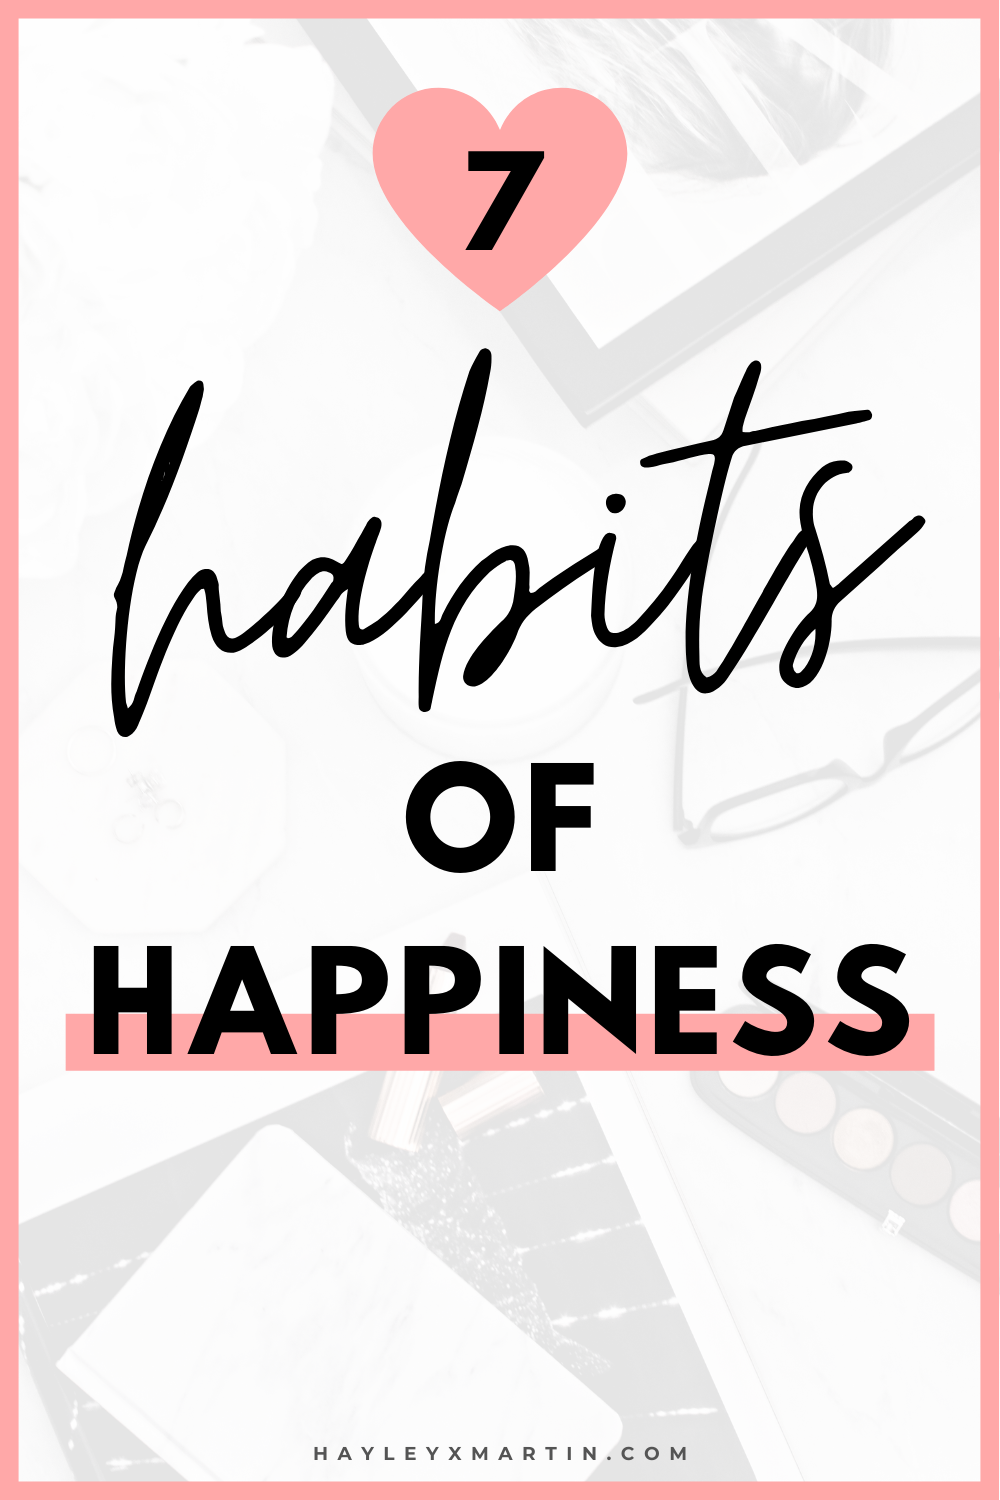 7 HABITS OF HAPPINESS || HAYLEYXMARTIN